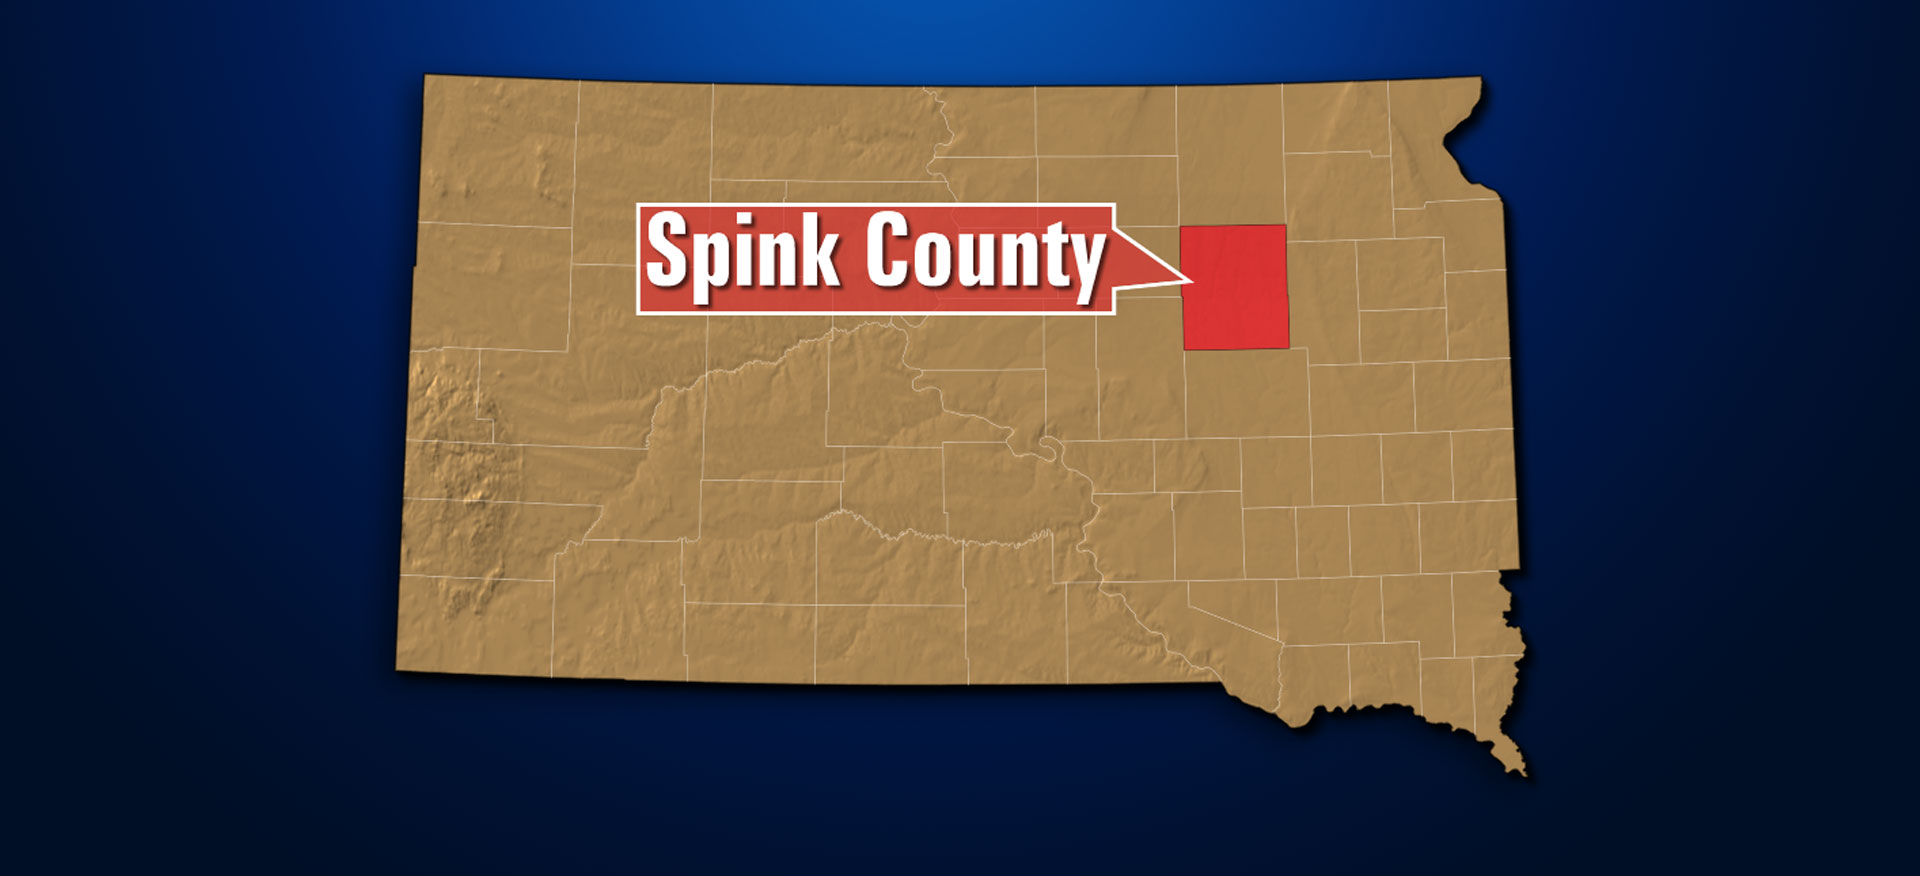 Spink county map